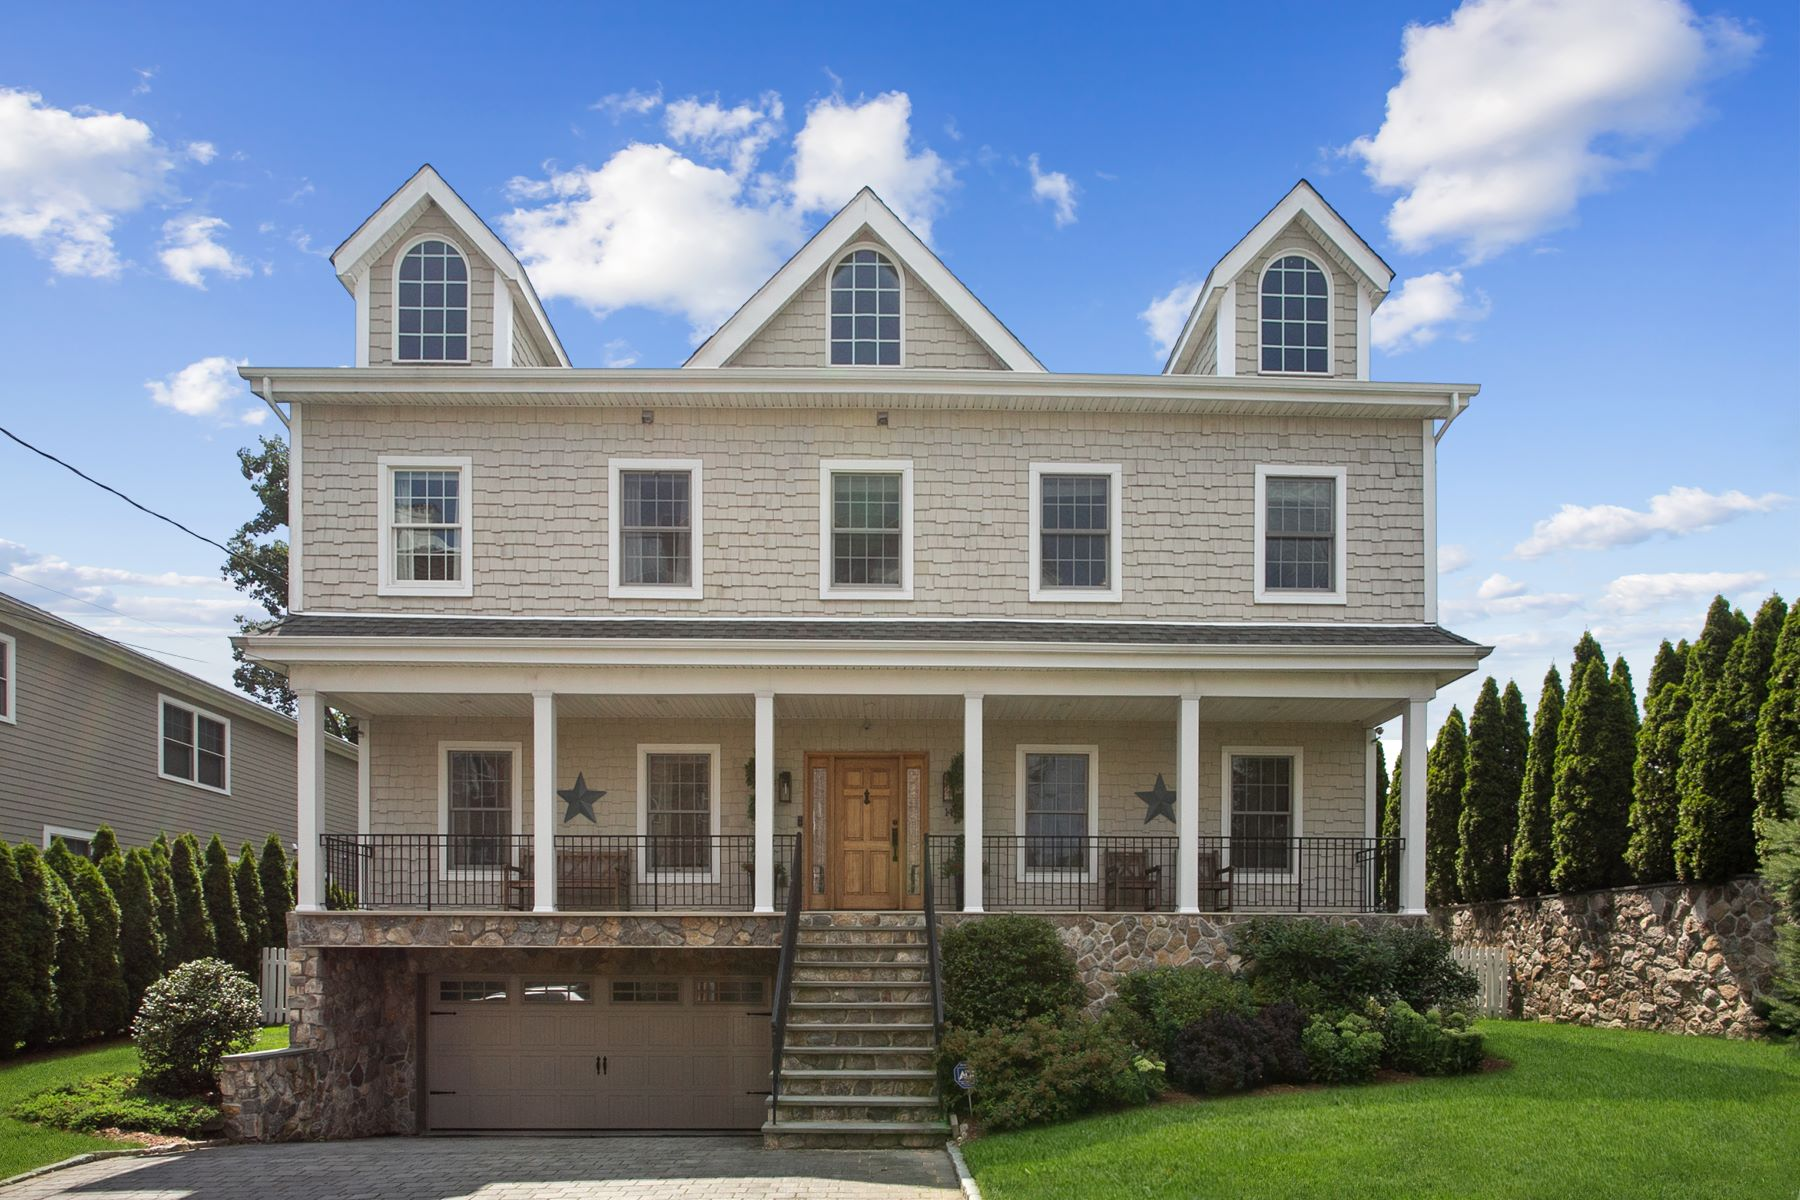 Single Family Homes for Active at 14 Sophia Street Mamaroneck, New York 10543 United States